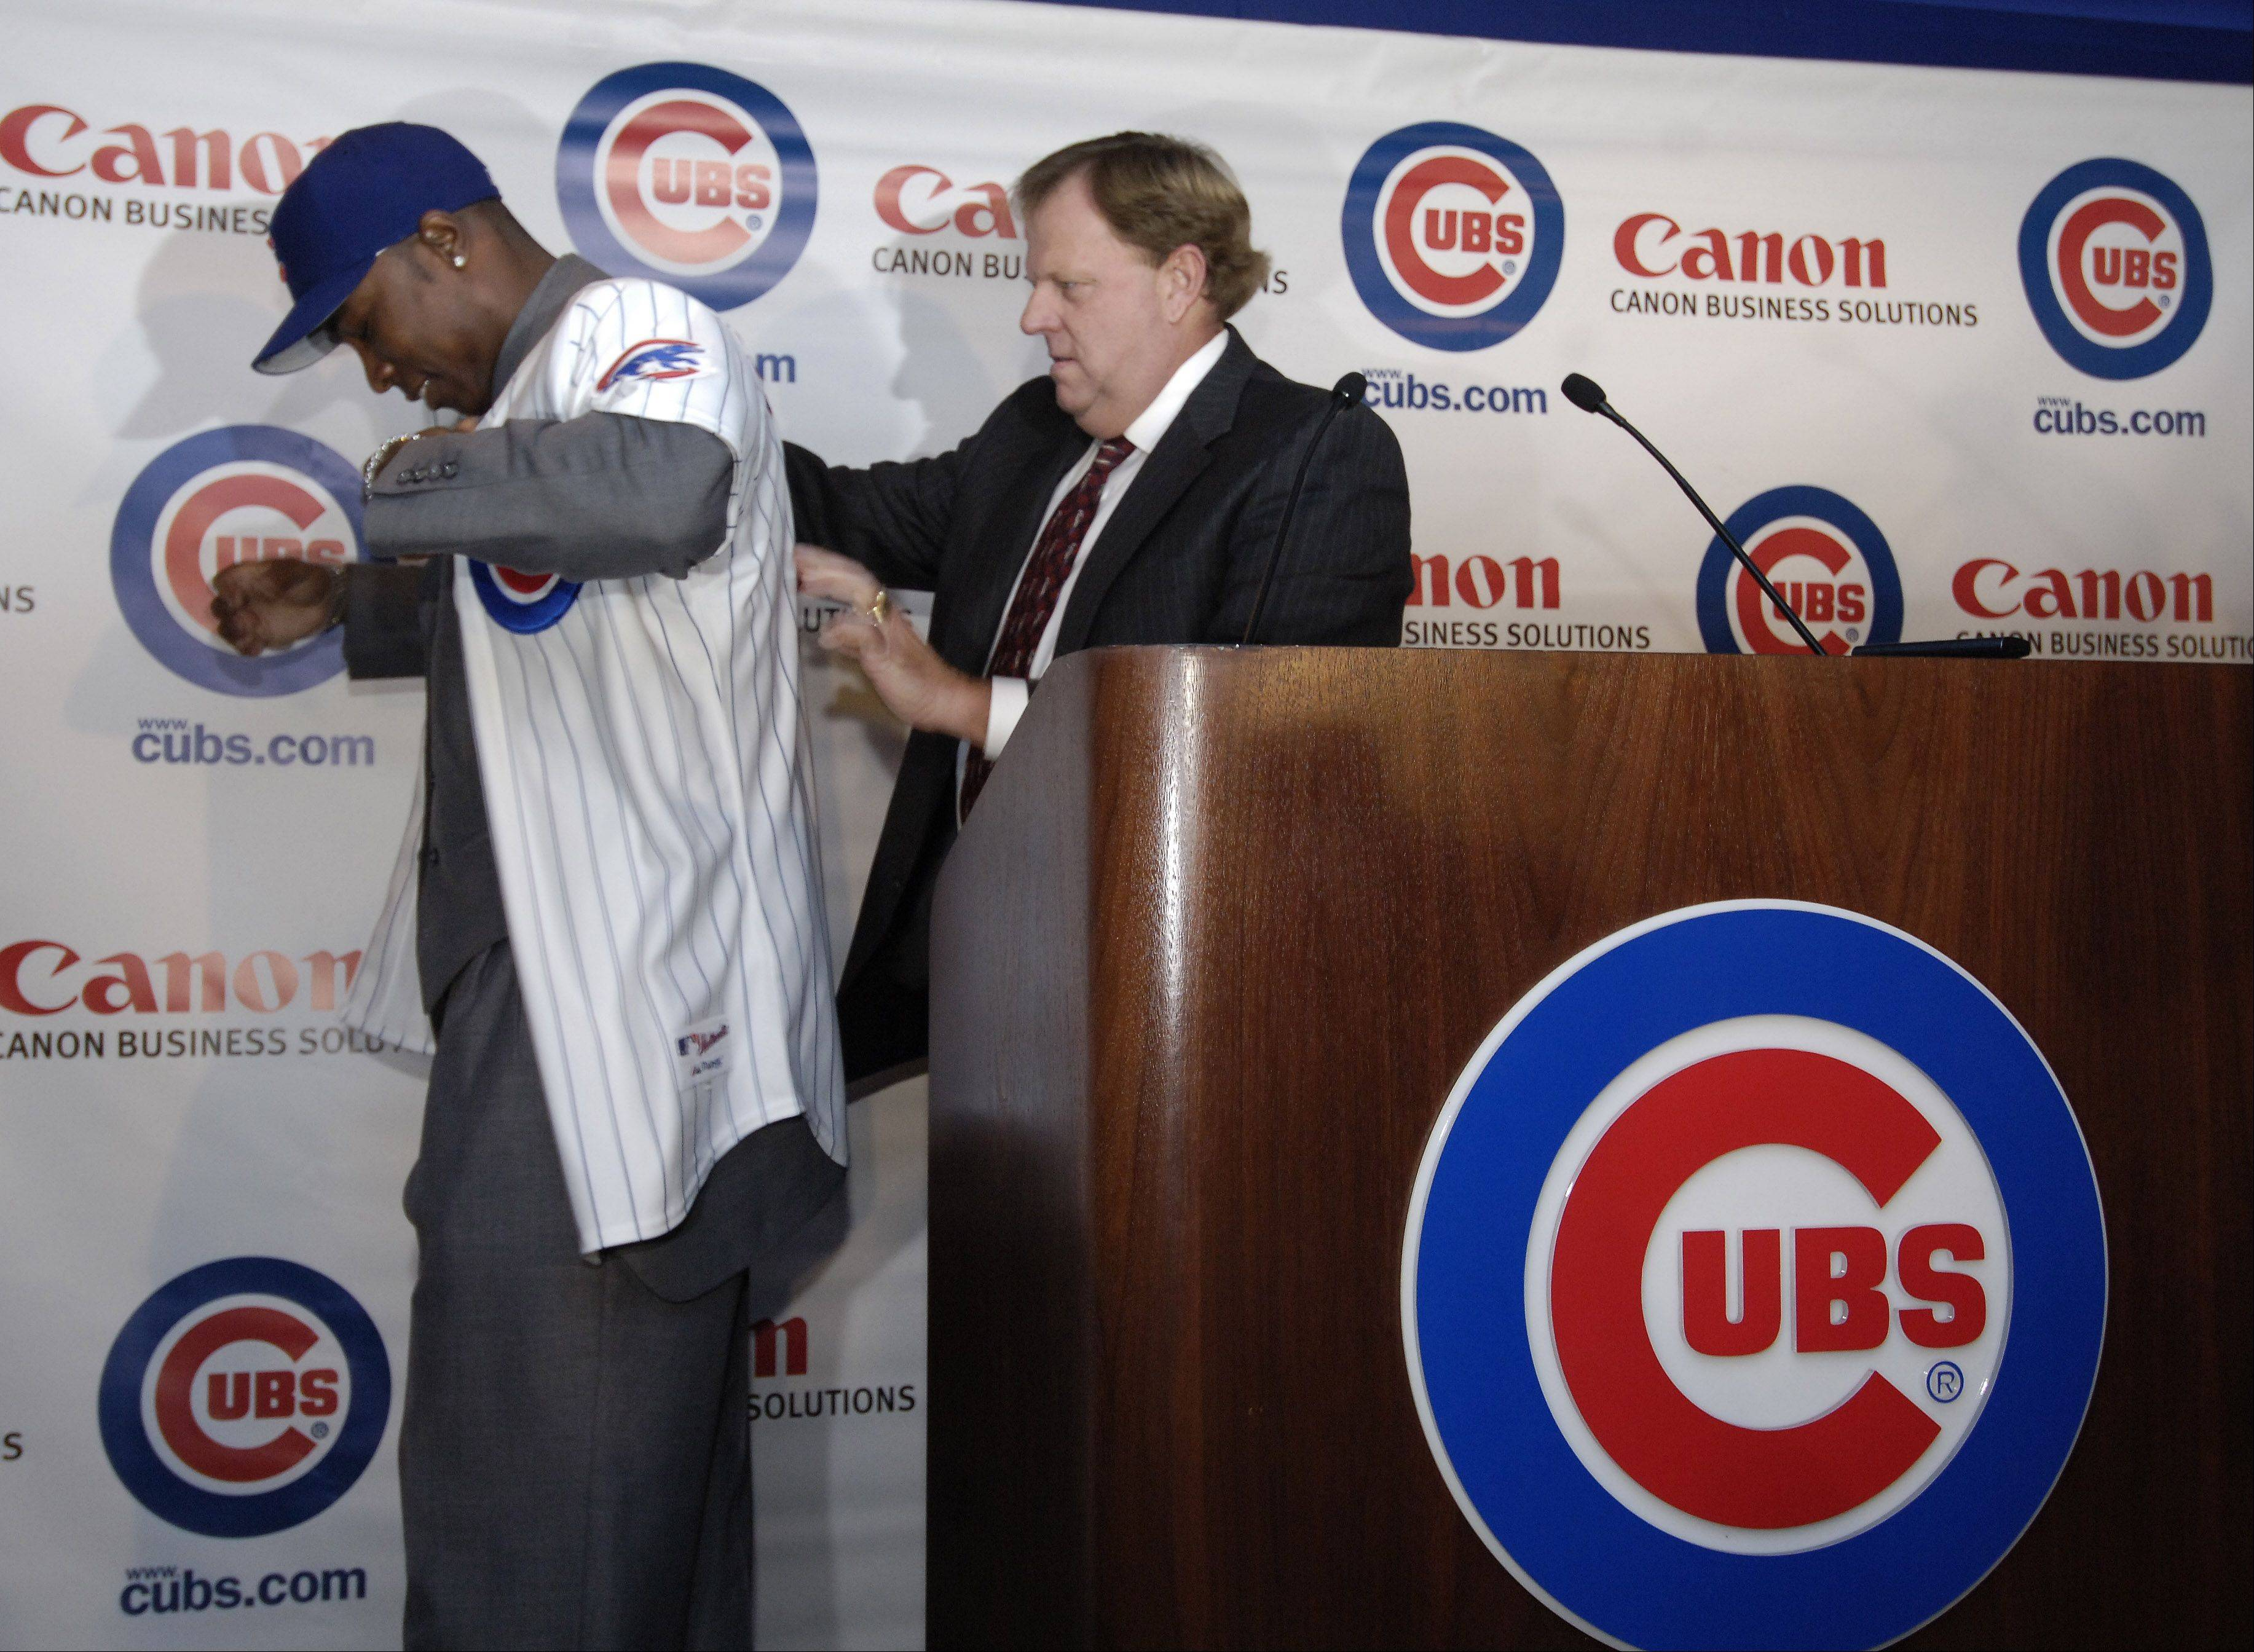 Cubs outfielder Alfonso Soriano got somehelp with his jersey from general manager Jim Hendry after he signed with the Cubs.